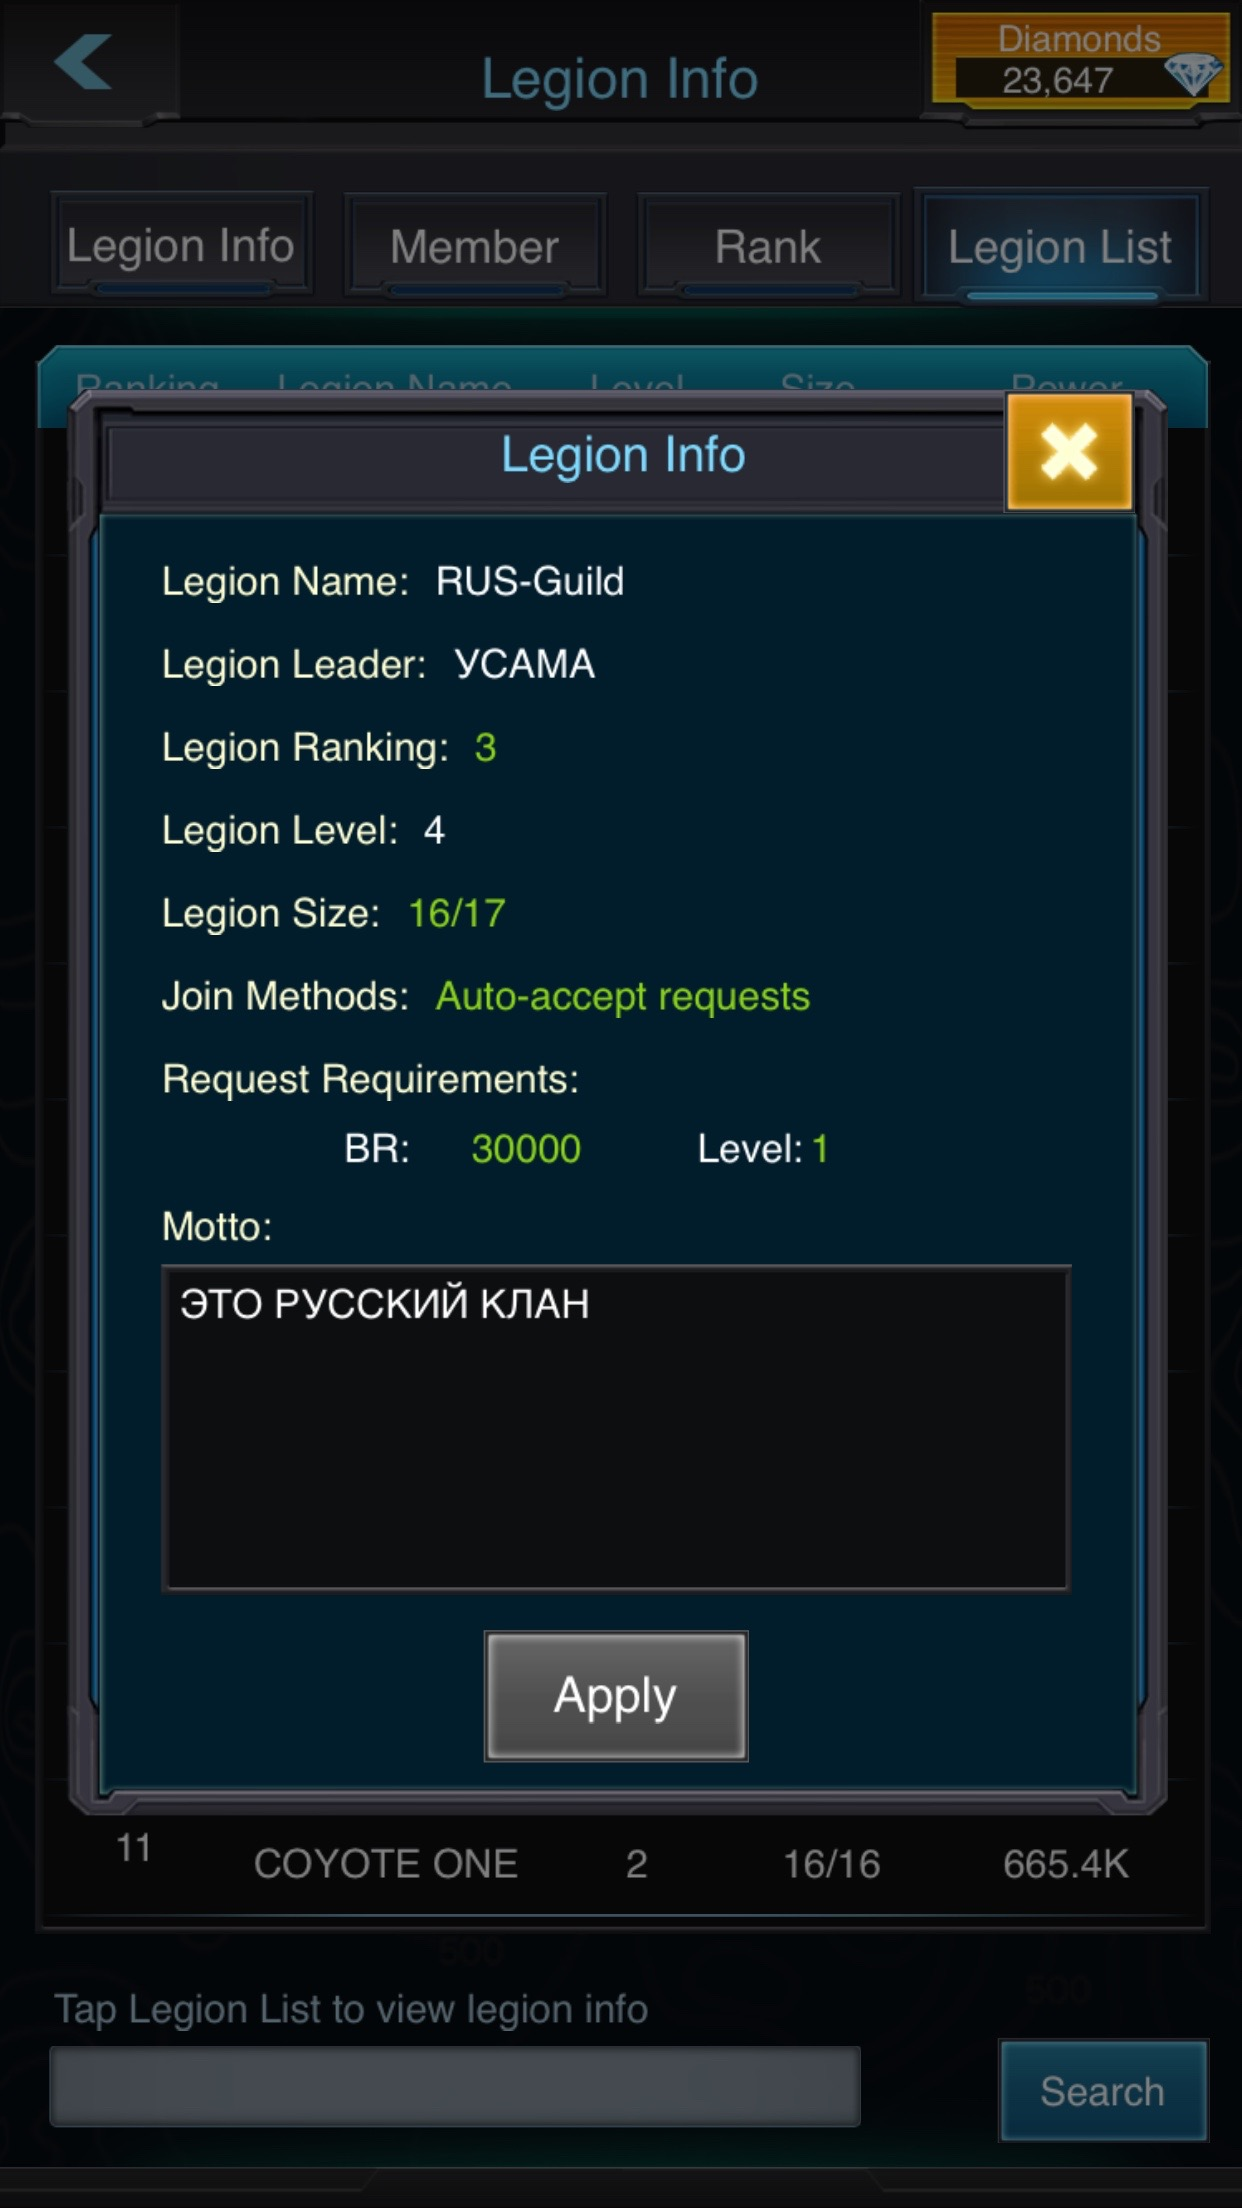 RUS-Guild led by YCAMA is defiantly group of Russians that will not care cost to win this Server, they will take any commander just to get their mission done.